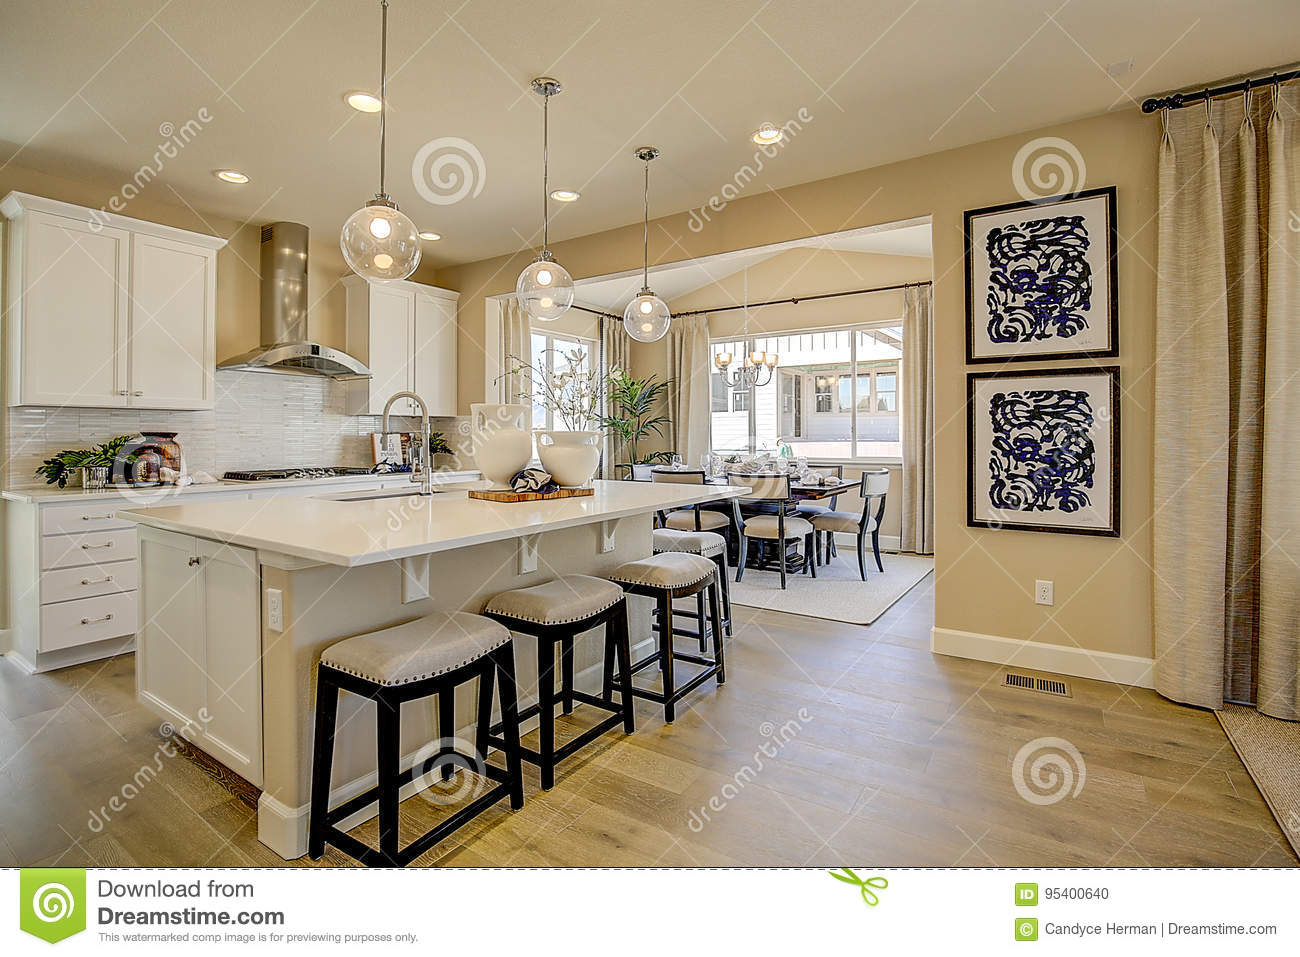 appealing white kitchen cabinets beige walls | Kitchen editorial image. Image of large, cabinetry ...